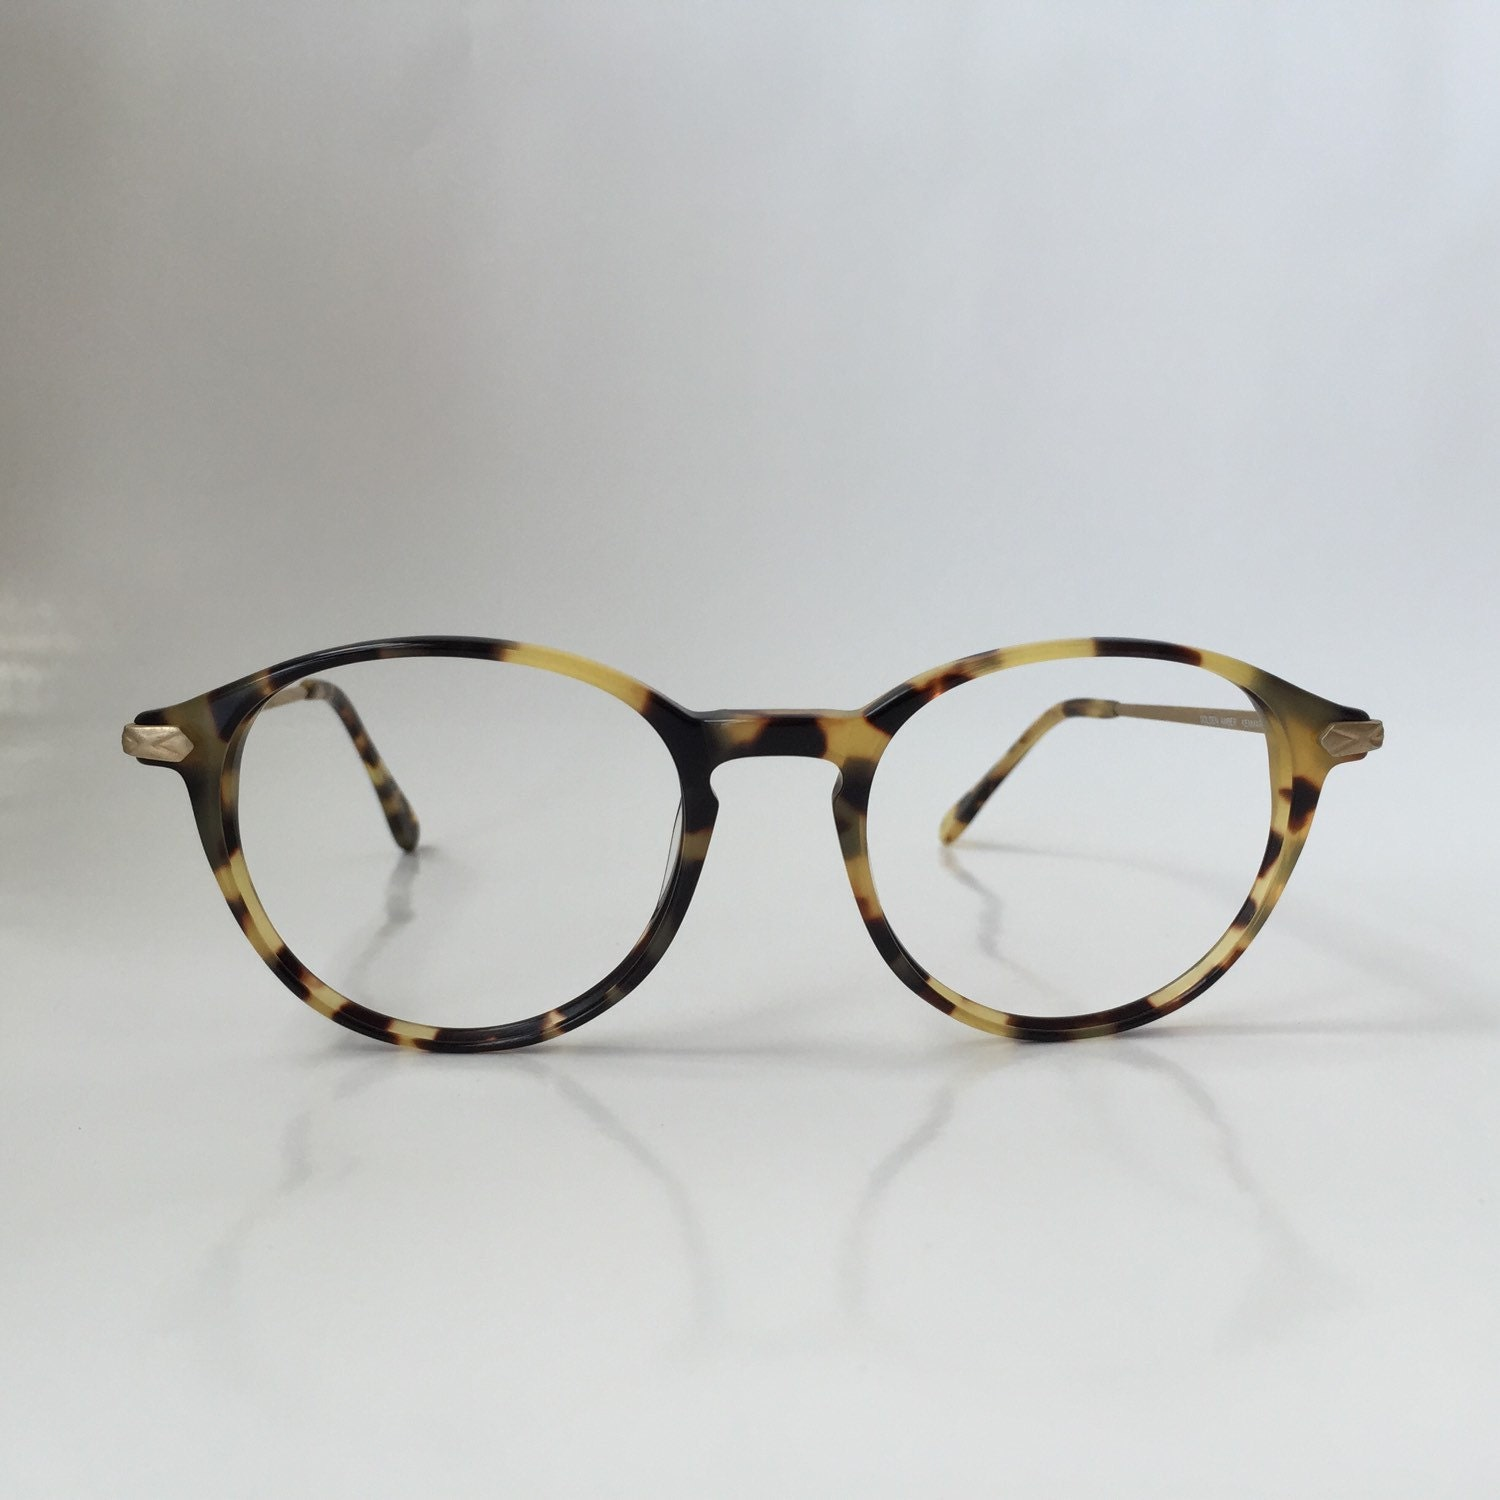 Eyeglass Frames Without Temples : Oversized vintage pantos eyeglasses round tortoise by ...